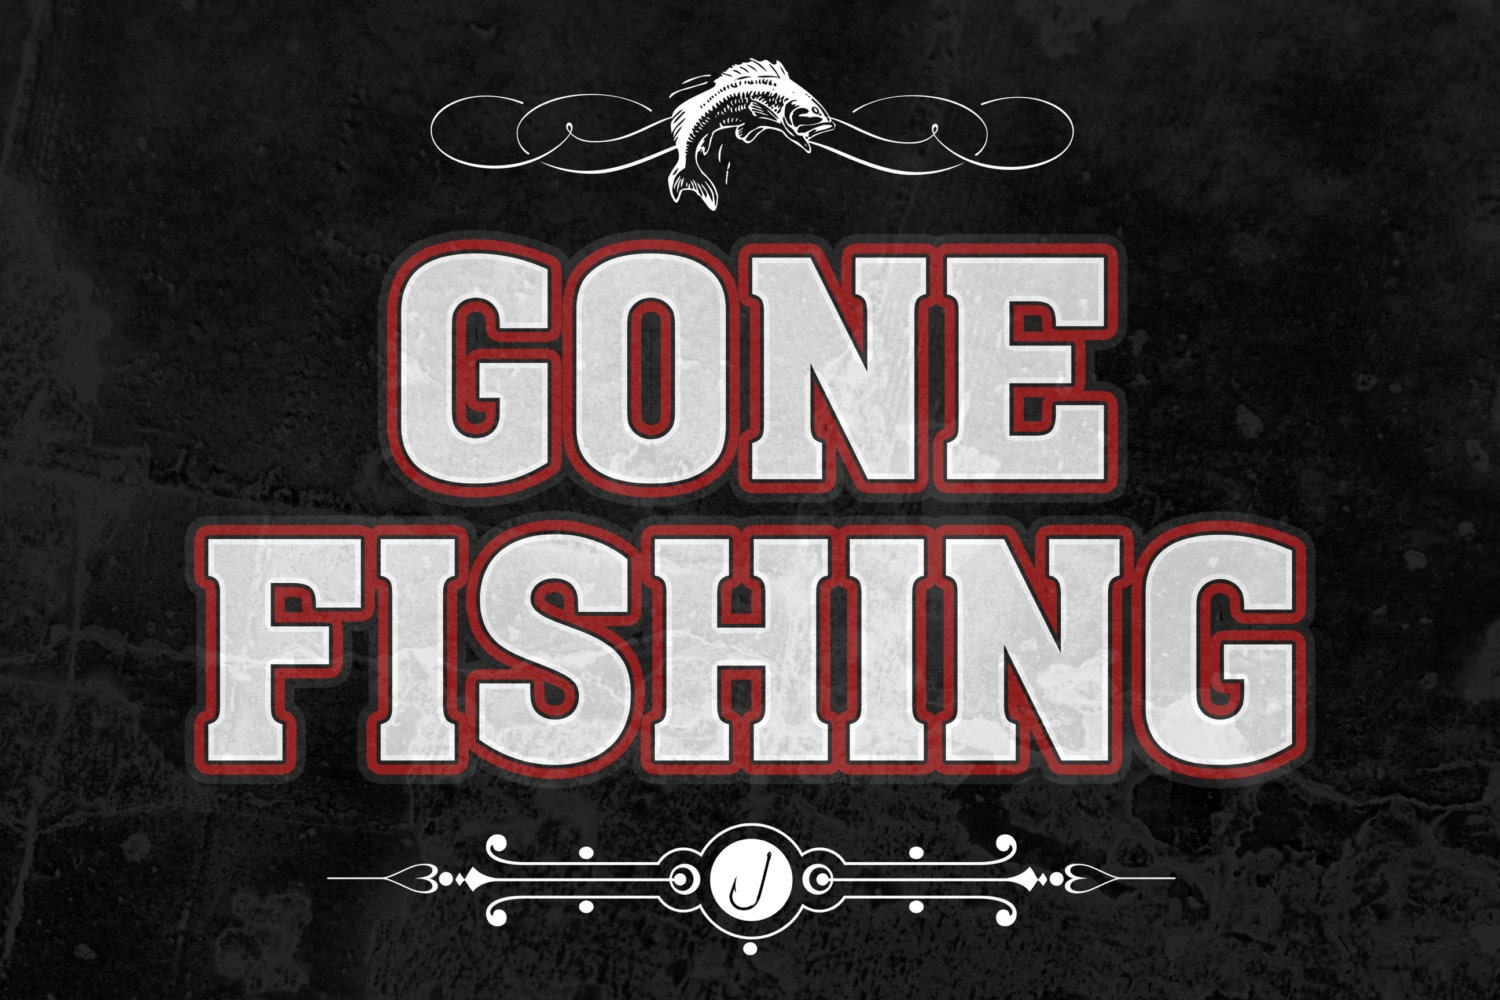 Gone fishing fishing sign plastic man cave s873 metal aluminum for Gone fishing sign